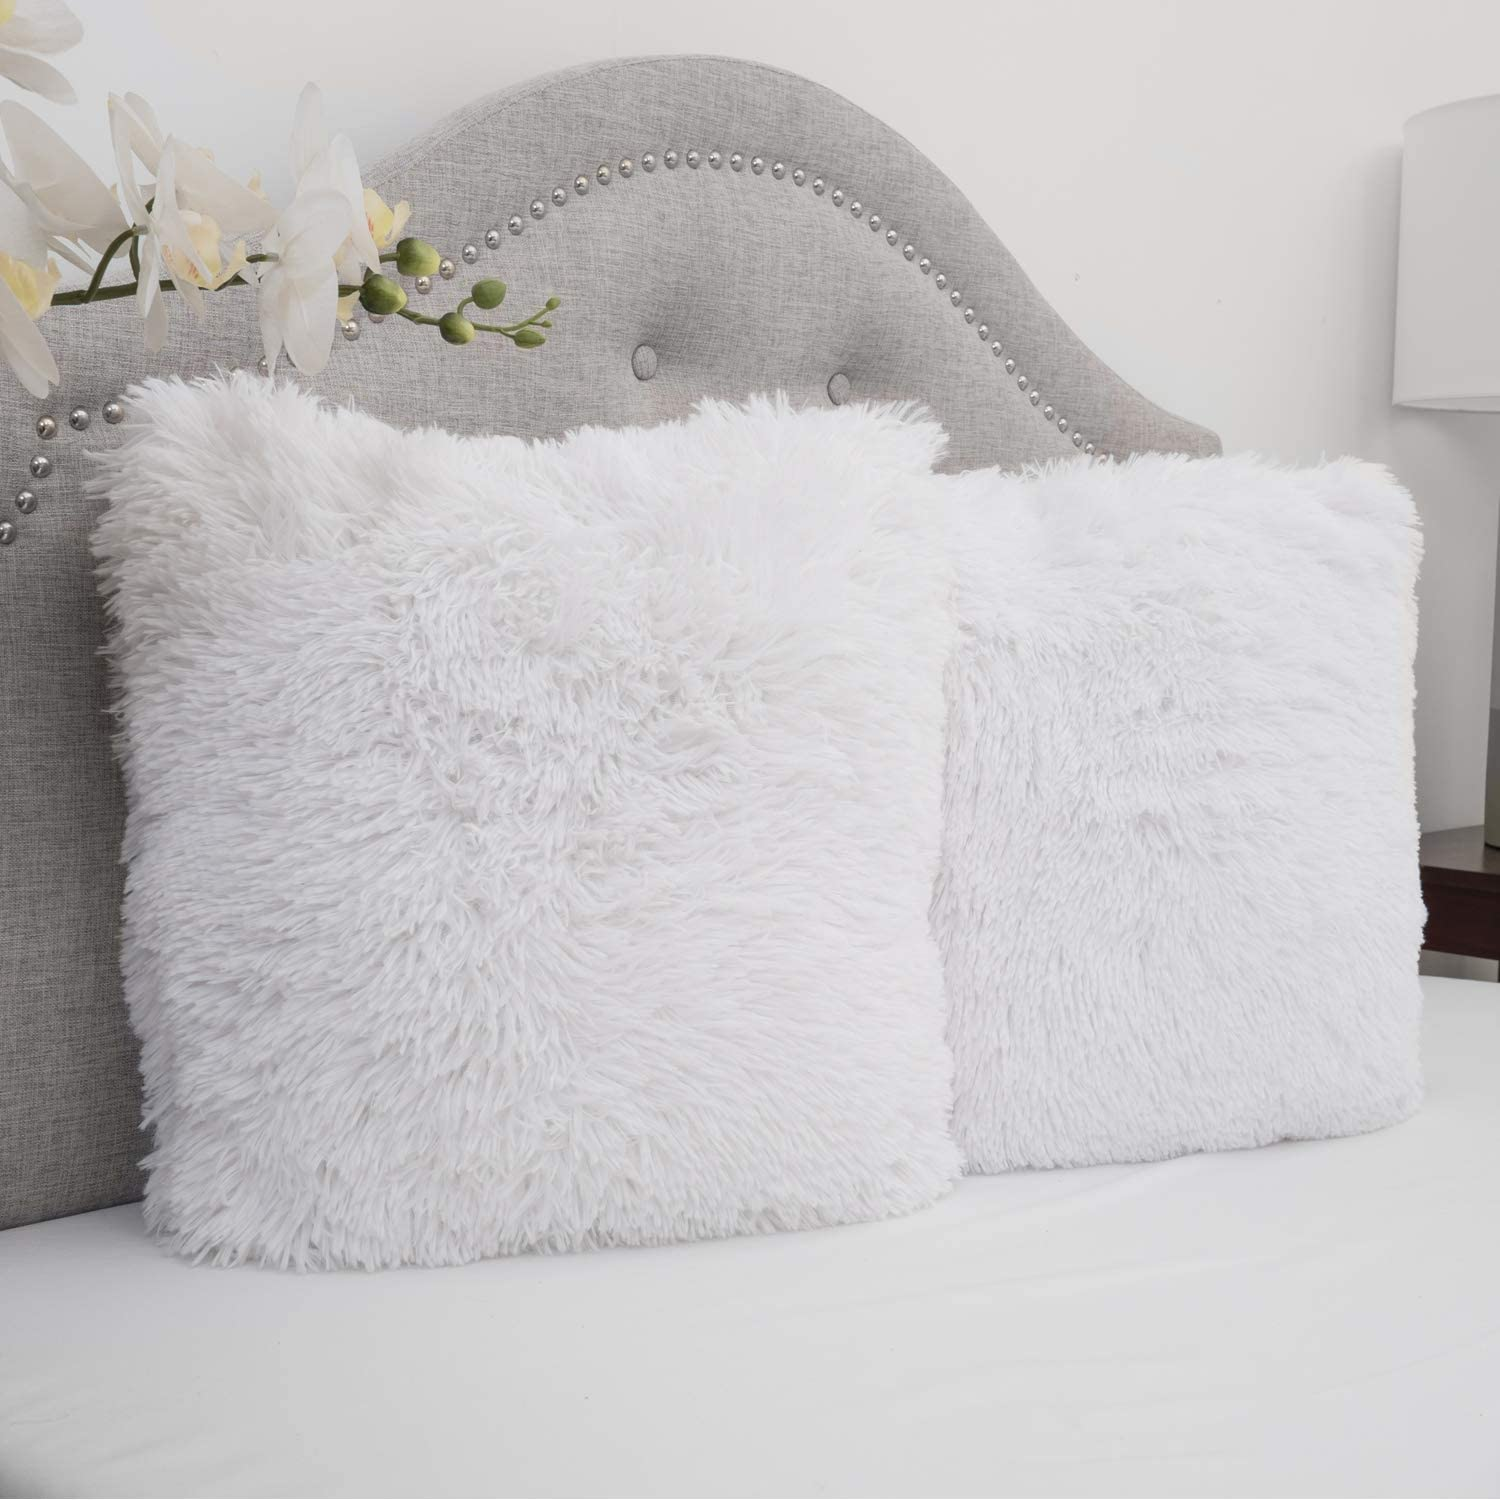 Sweet Home Collection Plush Pillow Faux Fur Soft and Comfy Throw Pillow (2 Pack), White: Home & Kitchen